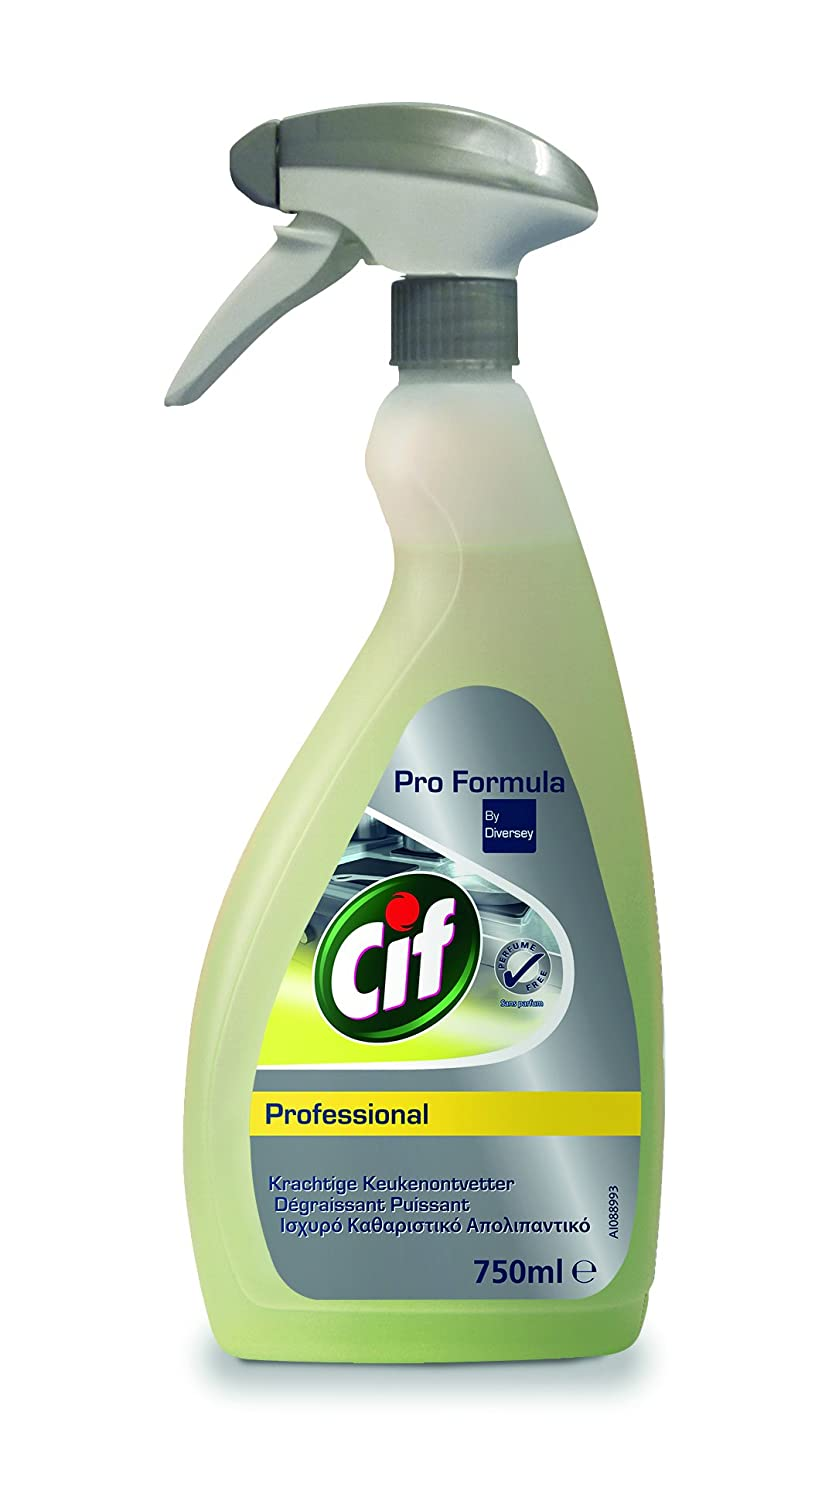 Cif Professional Powerful Degreaser 6 x 0.75 L (Pack of 6) Diversey 7517913